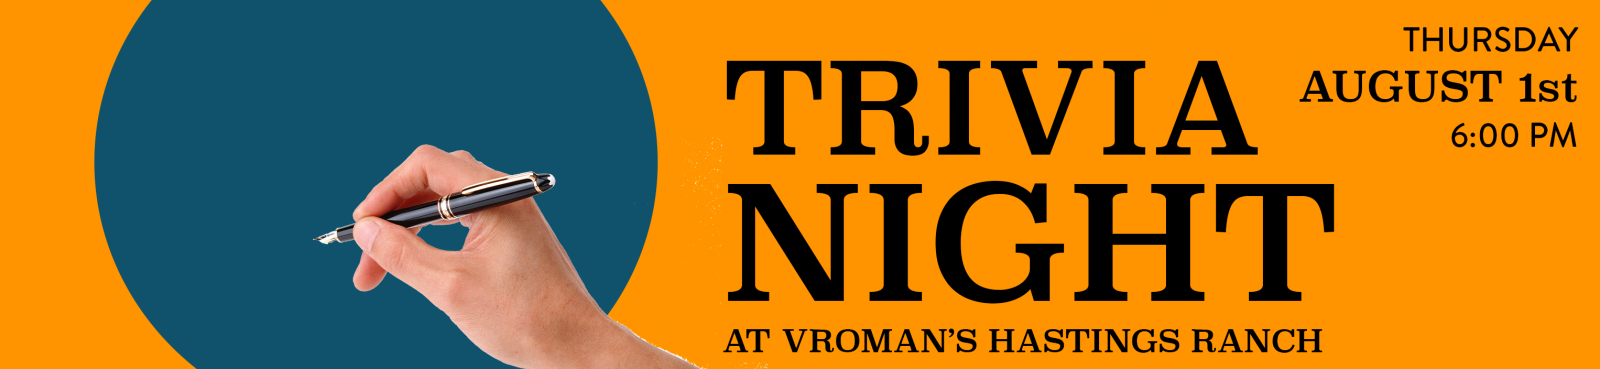 Trivia Night at Vroman's Hastings Ranch Thursday August 1st at 6pm